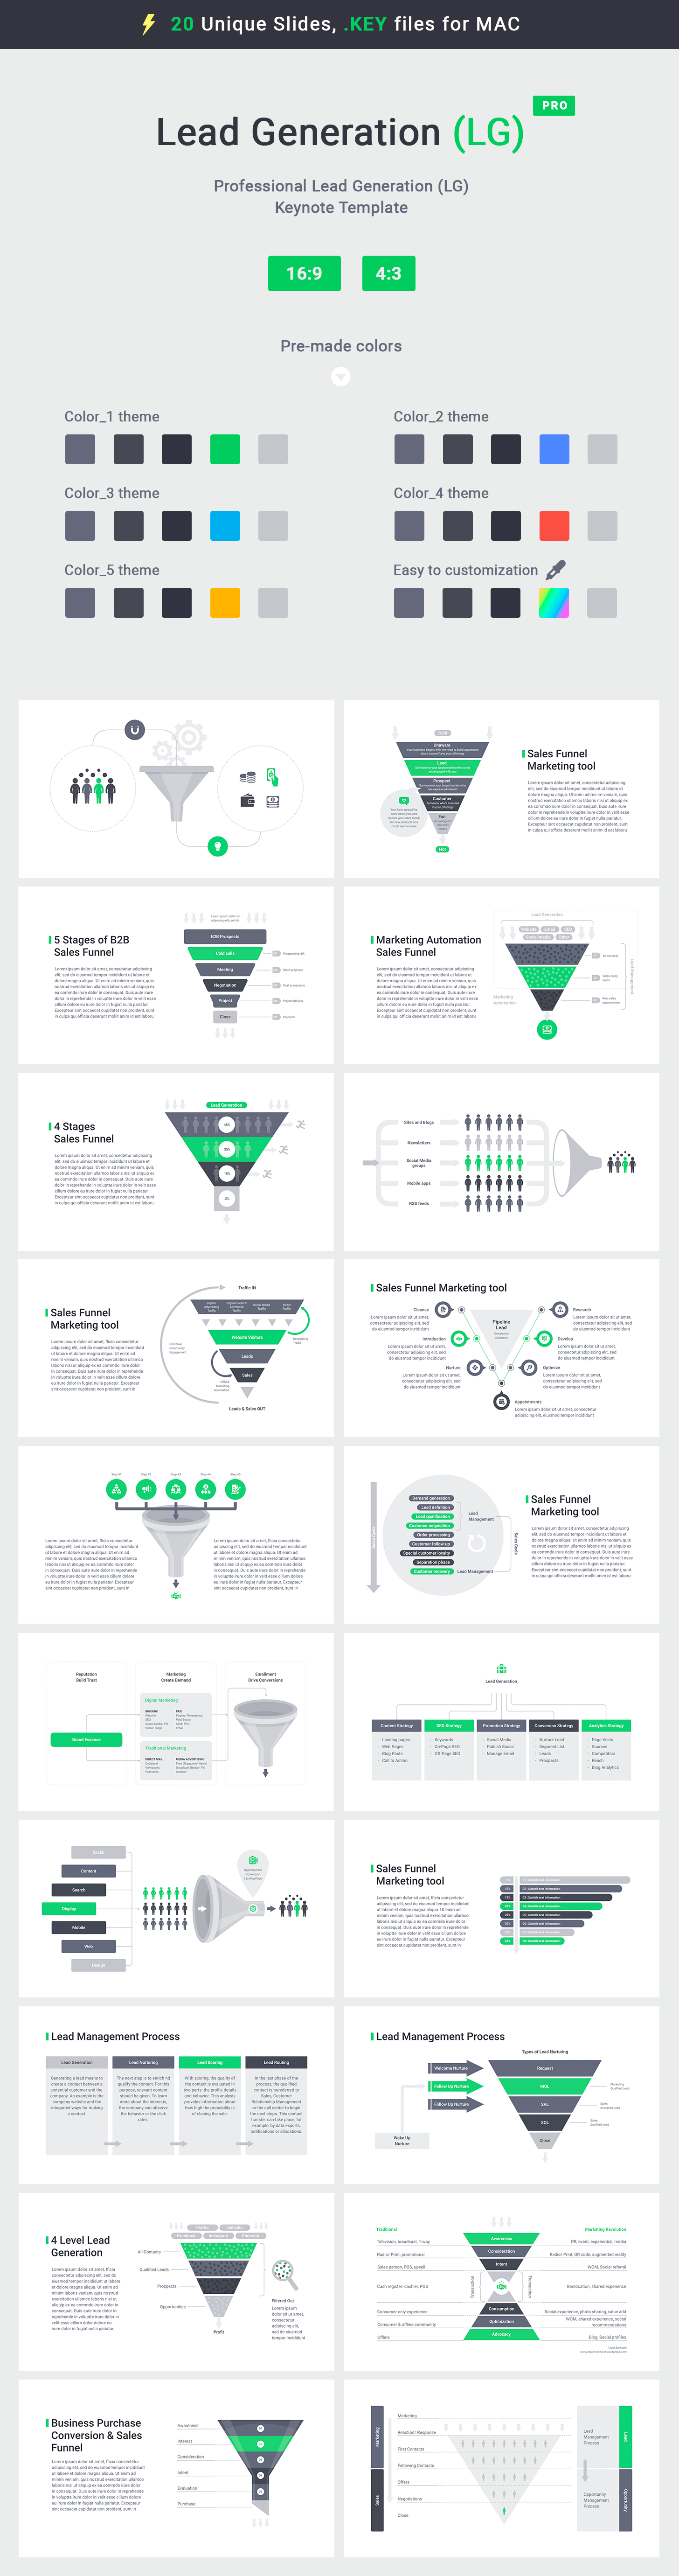 lead generation process presentation template